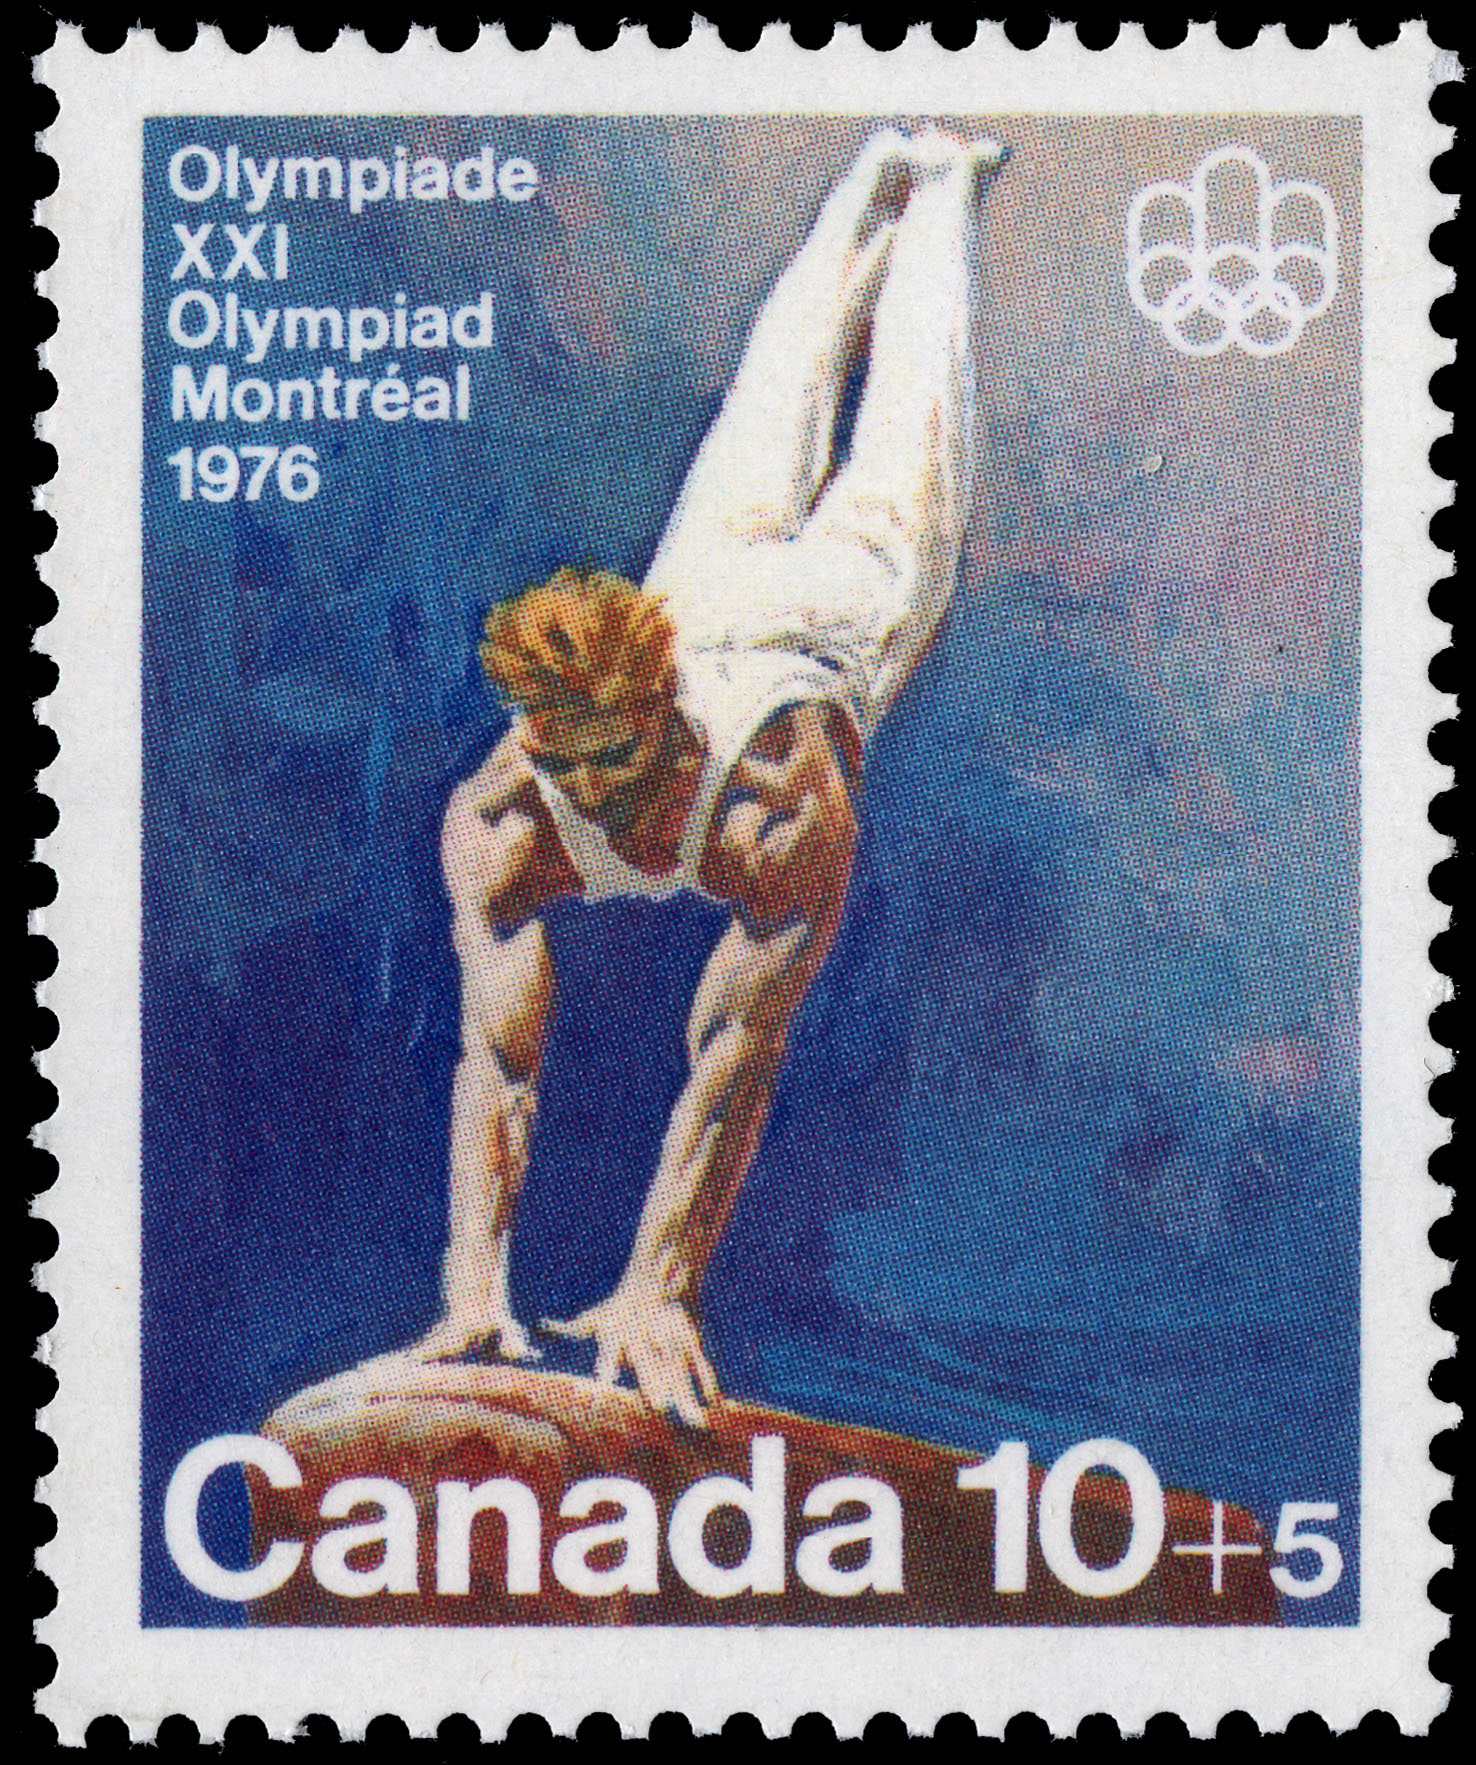 Vaulting Canada Postage Stamp